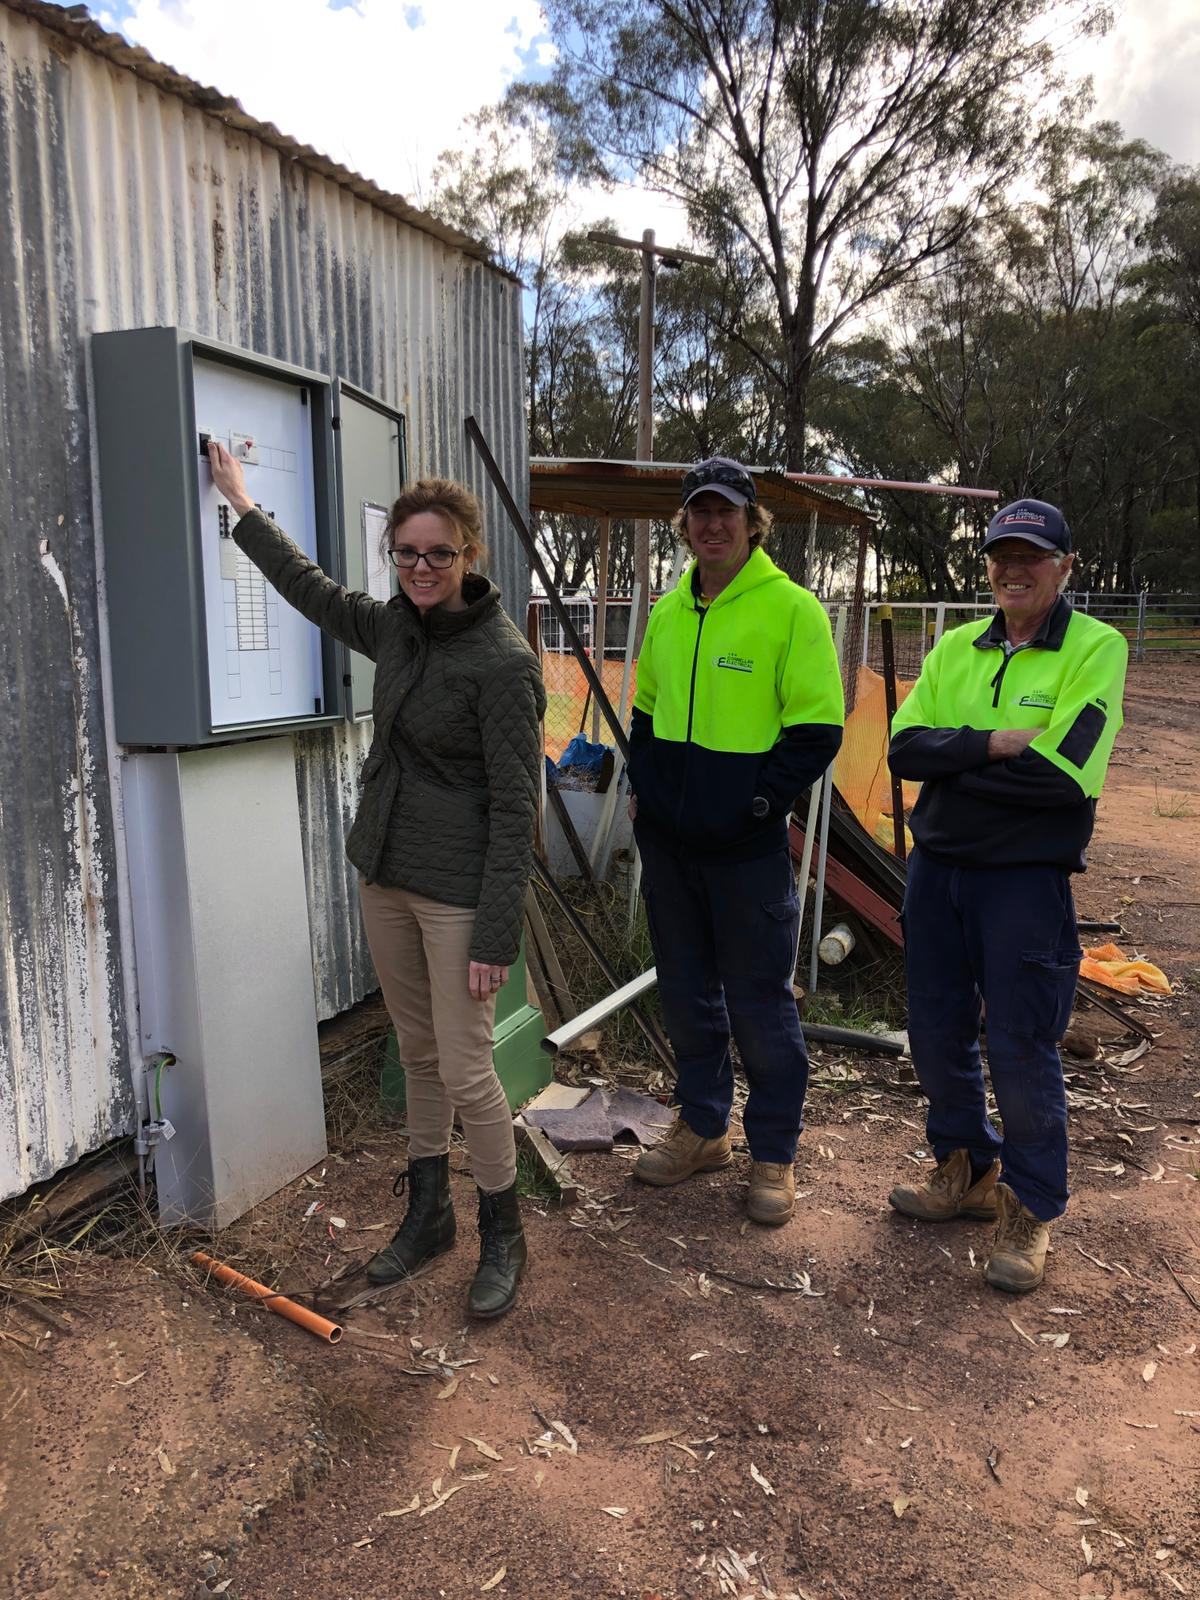 Steph Cooke MP with contractors Andrew and Garry Conlon at the rodeo ground. They stand in front of a new electrical box.